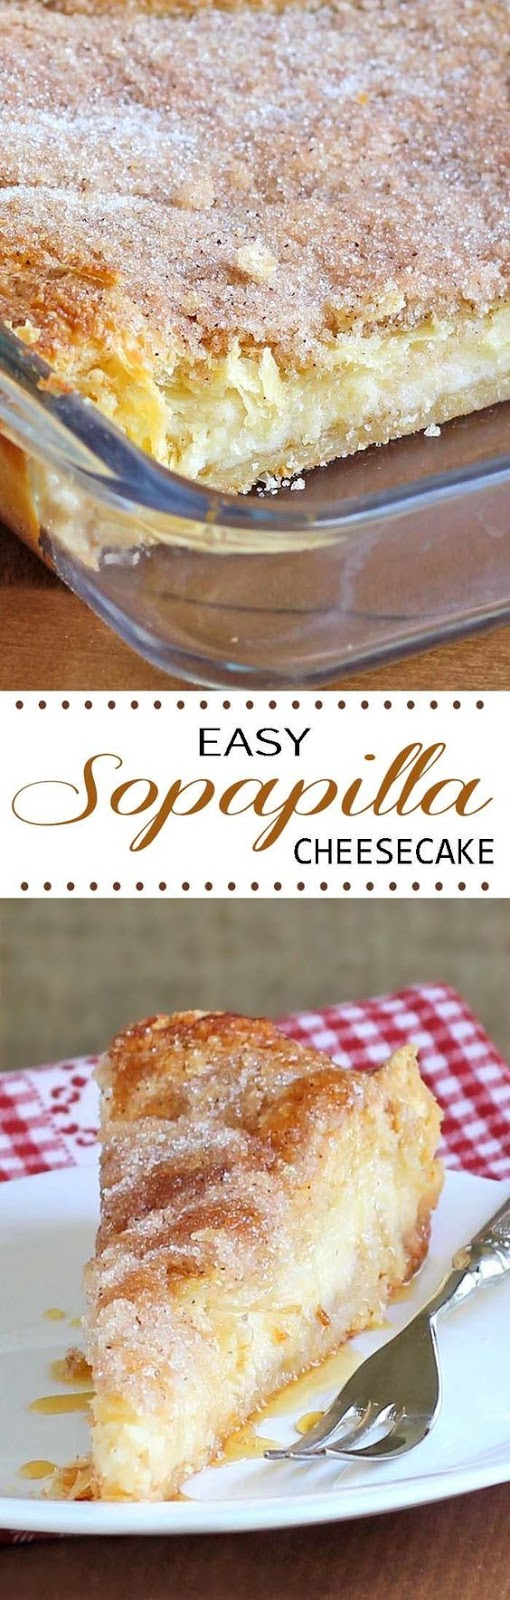 Easy Sopapilla Cheesecake Dessert #sopapilla #cheesecake #cheese #cake #cakerecipes #dessert #dessertrecipes #easydessertrecipes